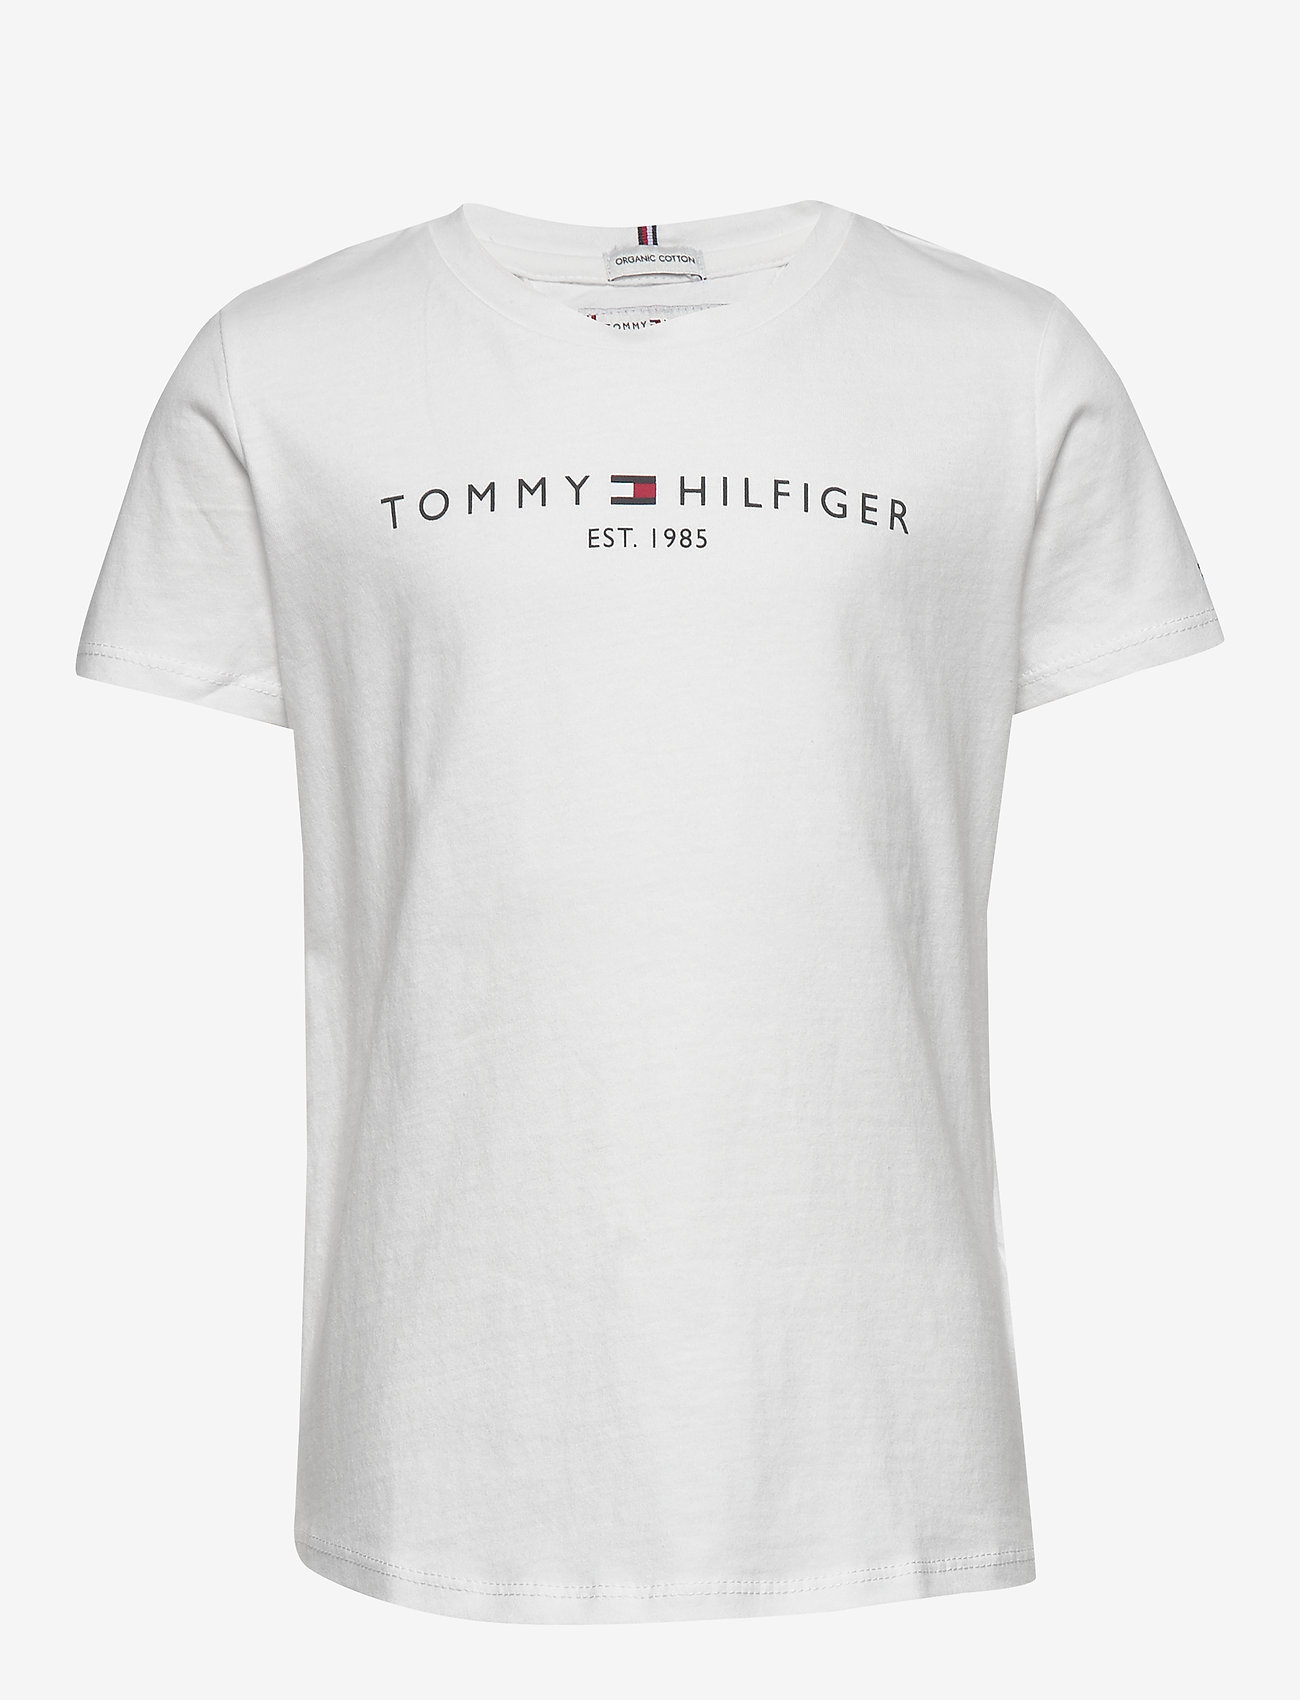 Tommy Hilfiger - ESSENTIAL  TEE S/S - short-sleeved - white